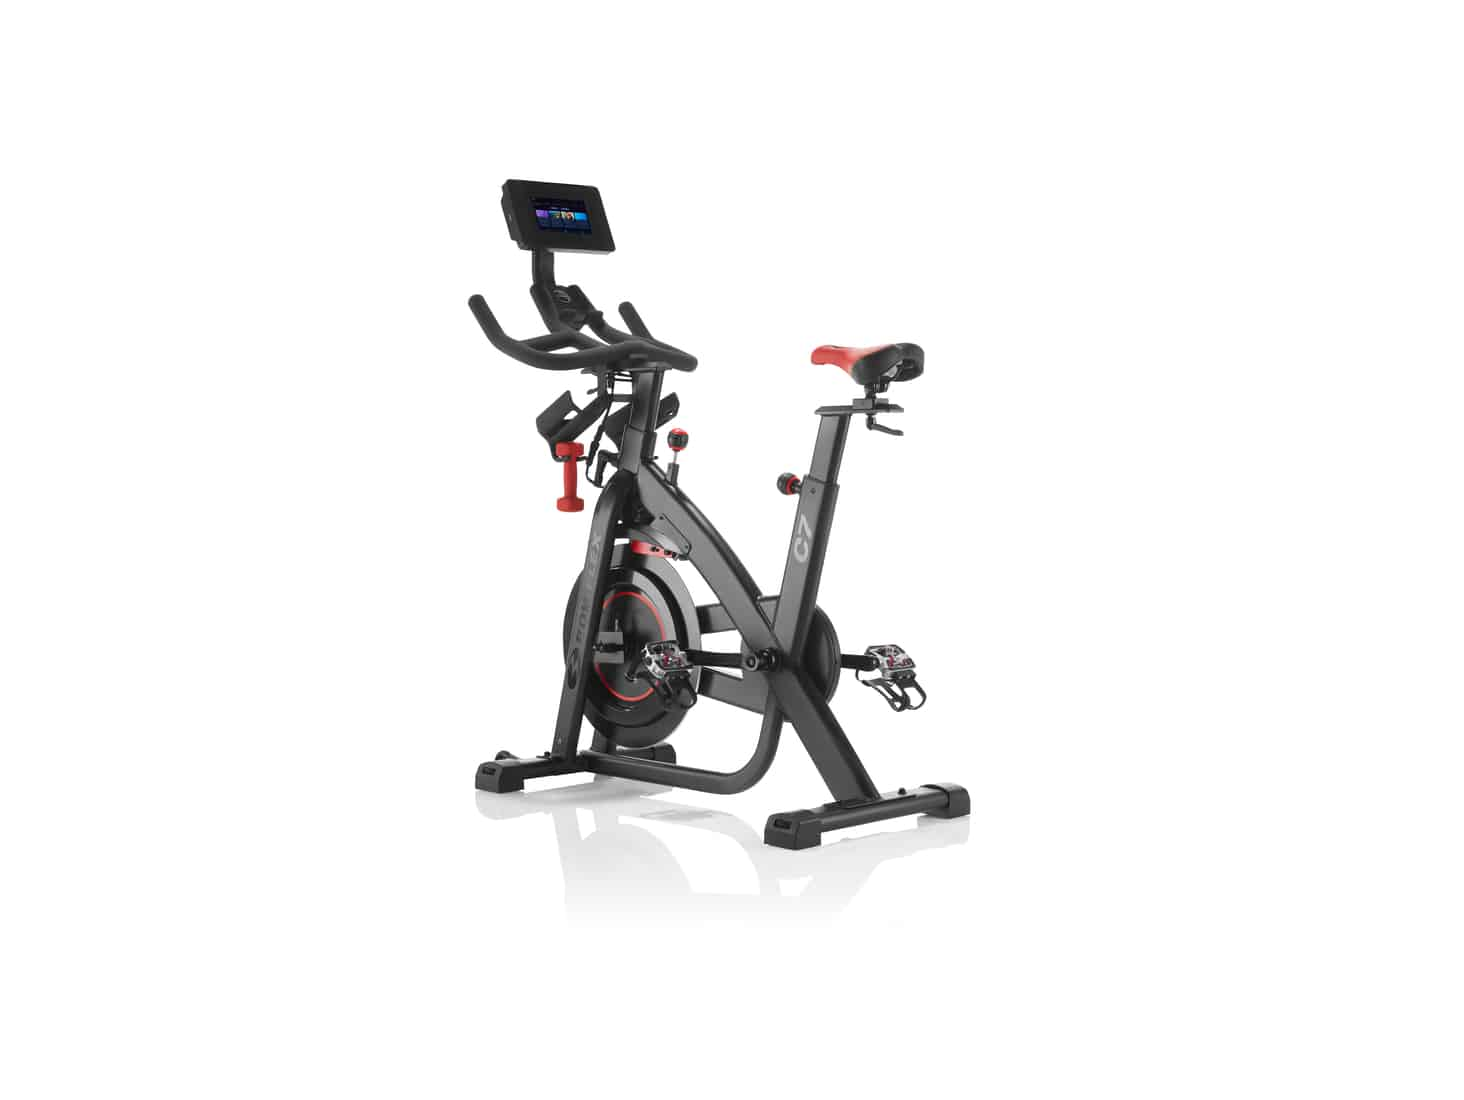 Home Fitness News: New Bowflex C7 connected indoor cycling bike makes retail debut at select Dick's Sporting Goods.